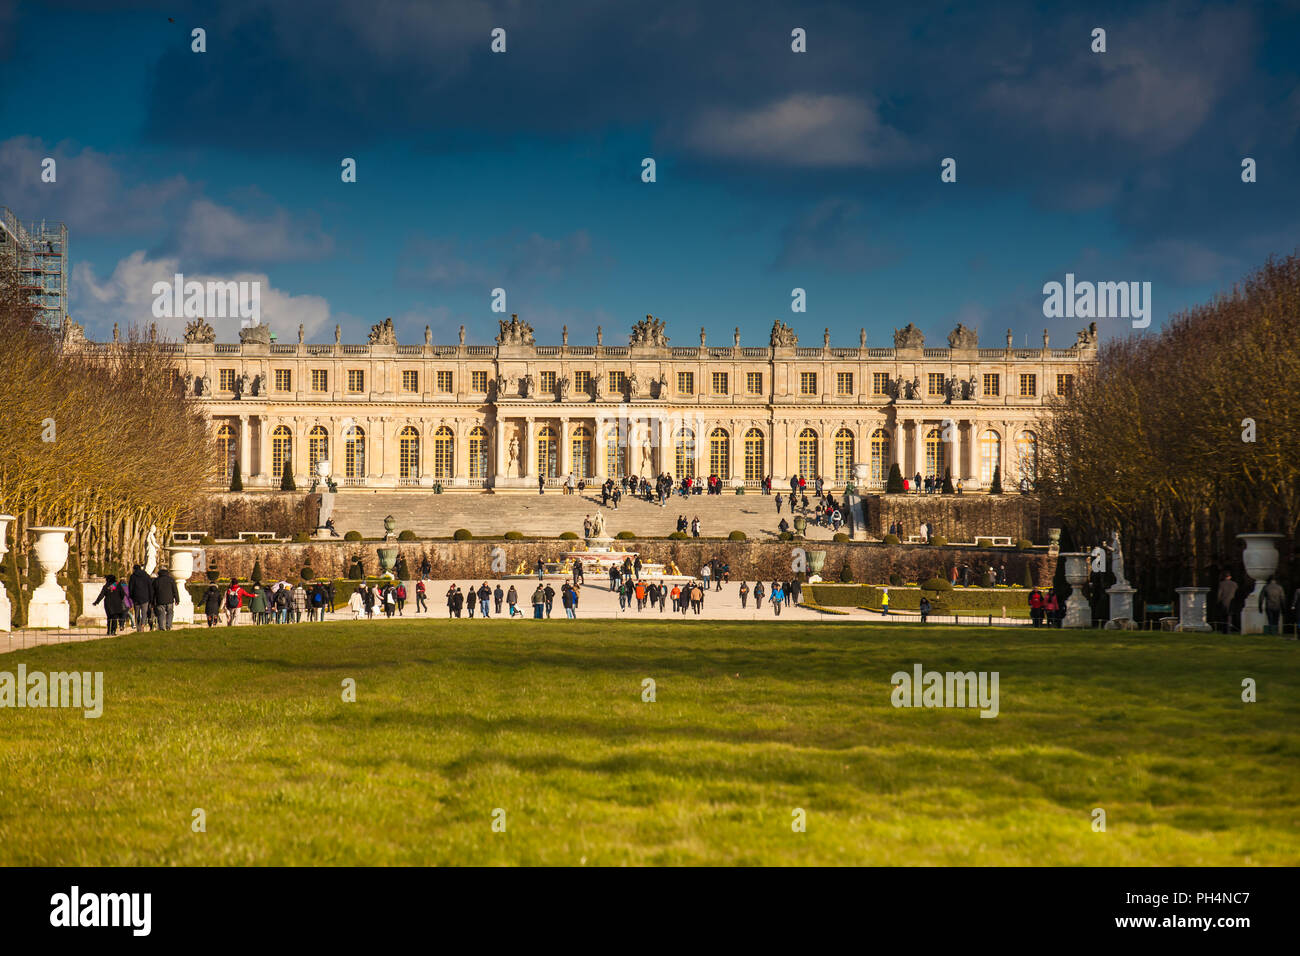 Garden of the Versailles Palace in a freezing winter day just before spring - Stock Image